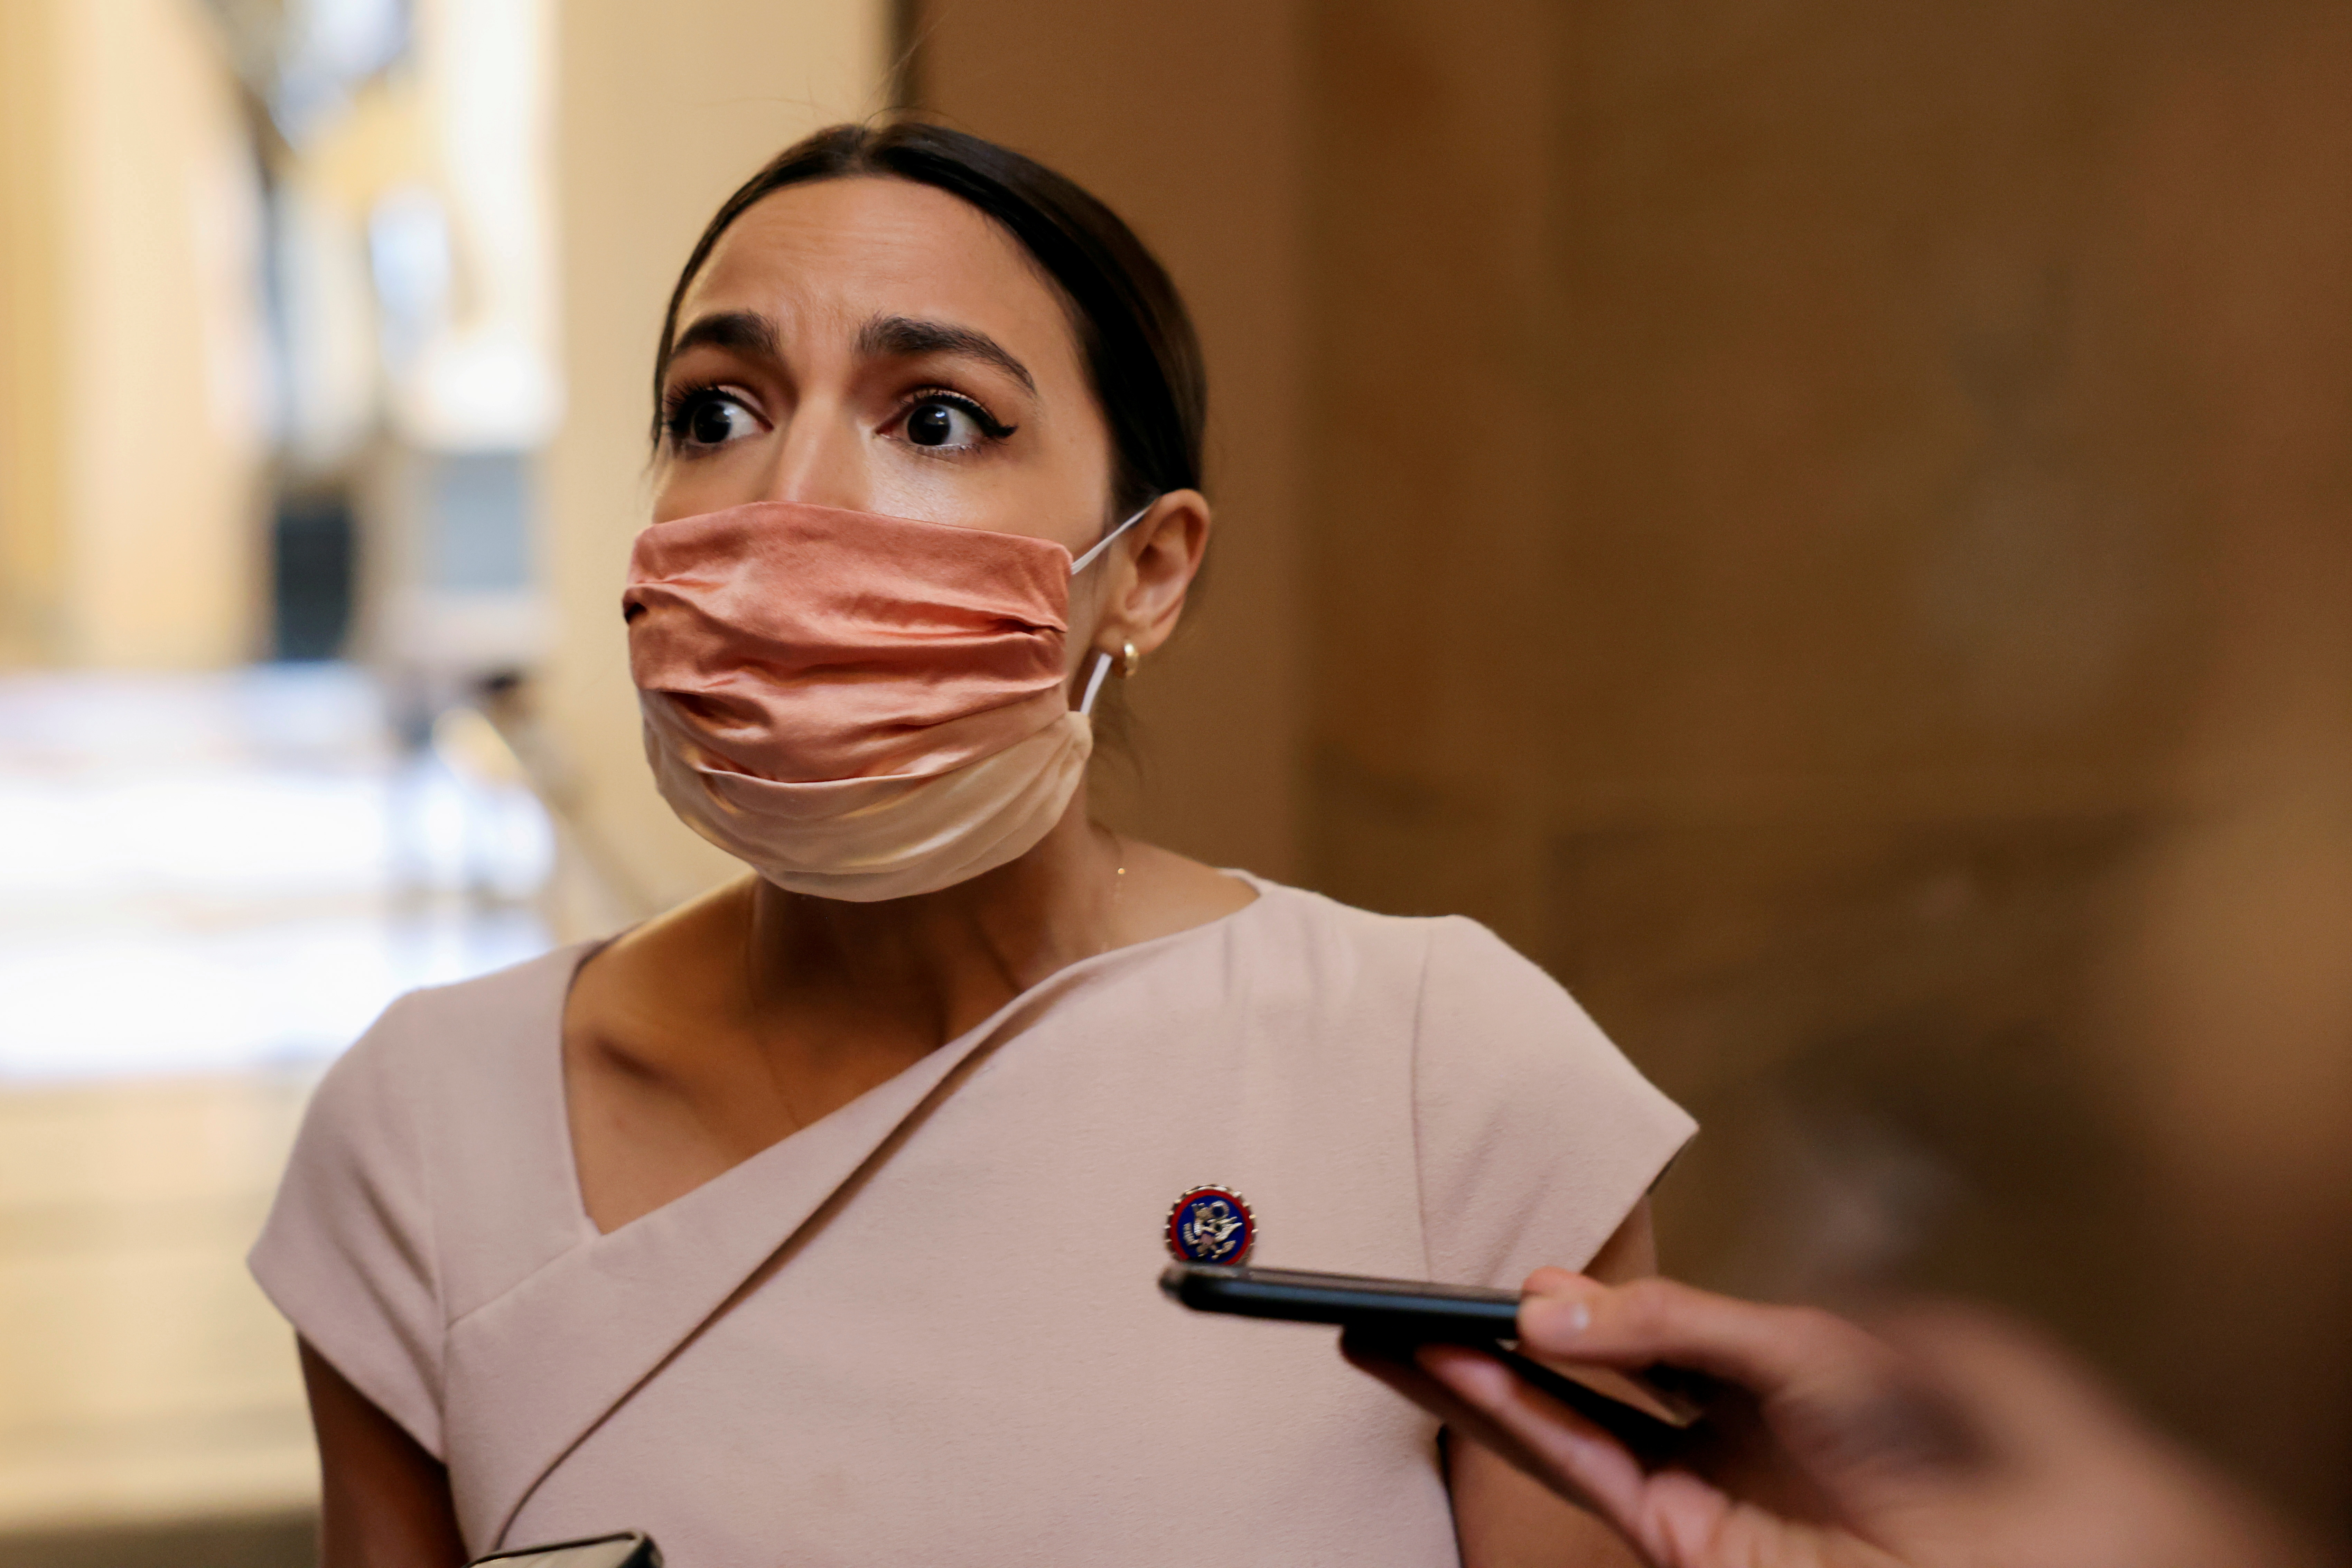 U.S. Representative Alexandria Ocasio-Cortez reacts as she walks past reporters on Capitol Hill in Washington, U.S., May 13, 2021. REUTERS/Evelyn Hockstein/File Photo